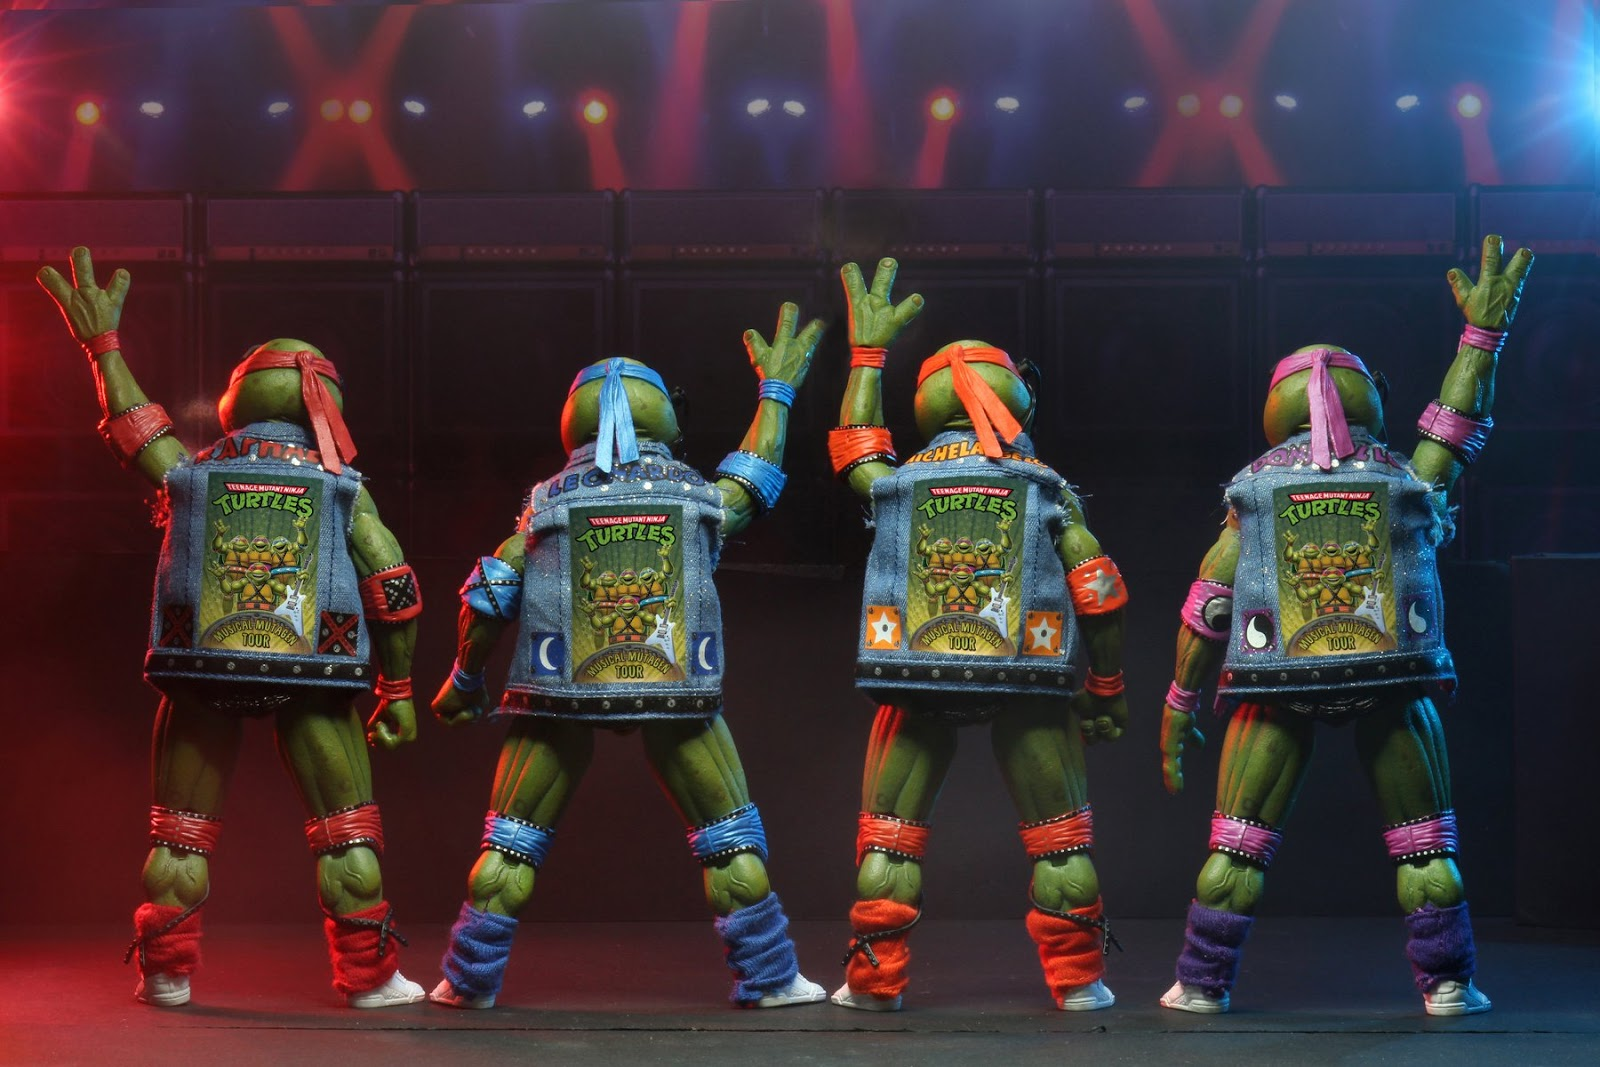 The Blot Says Sdcc 2020 Exclusive Teenage Mutant Ninja Turtles Musical Mutagen Tour Action Figure 4 Pack By Neca